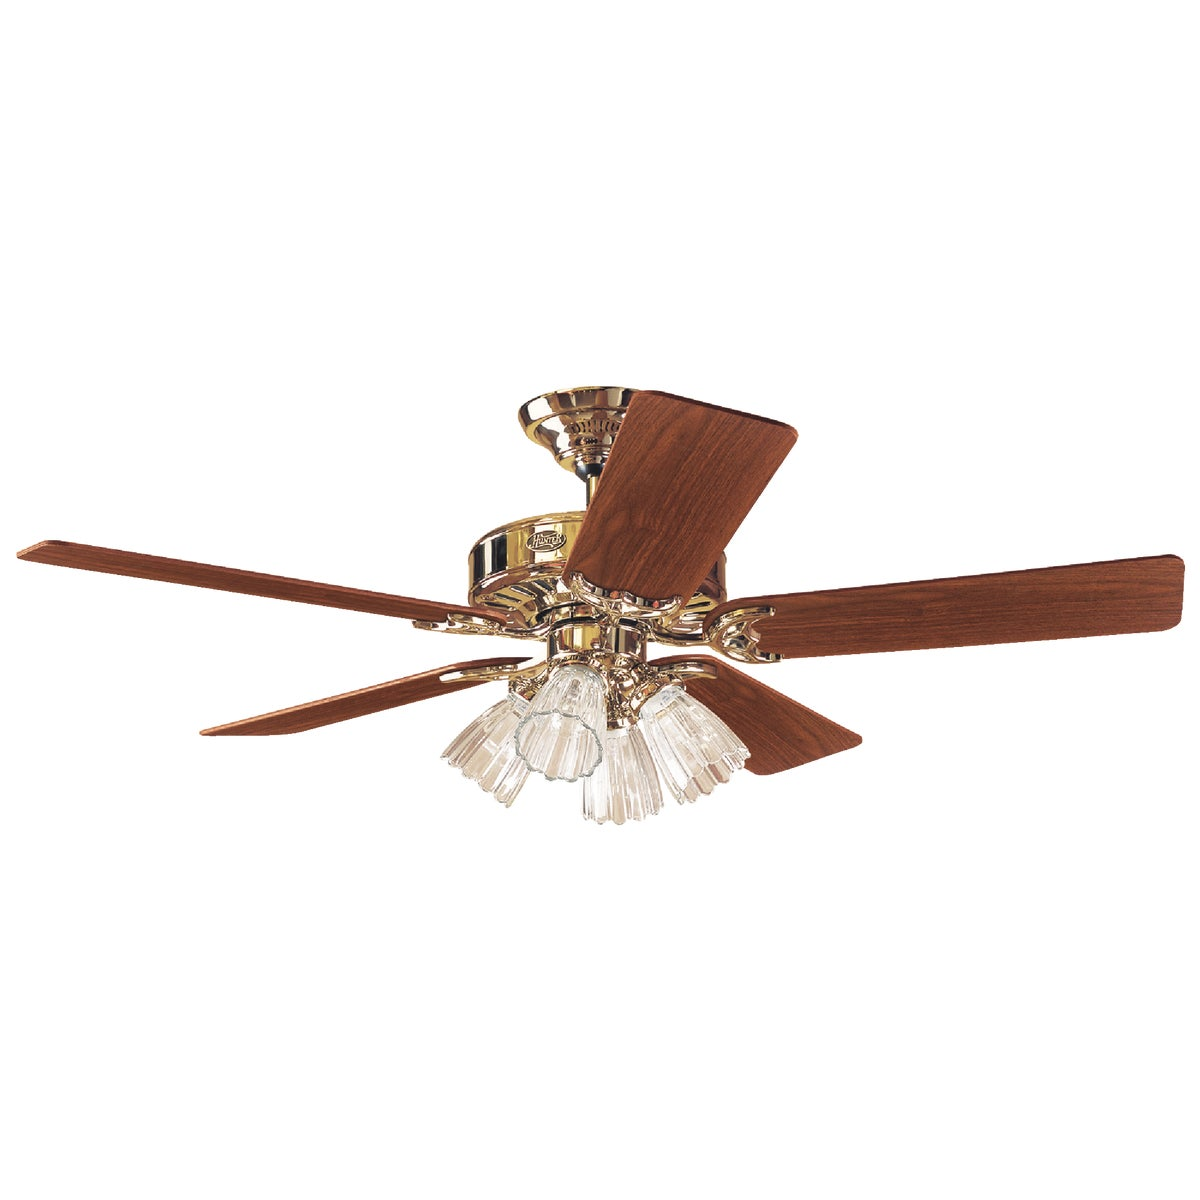 "52"" BB CEIL FAN W/LIGHT - 53066 by Hunter Fan Co"